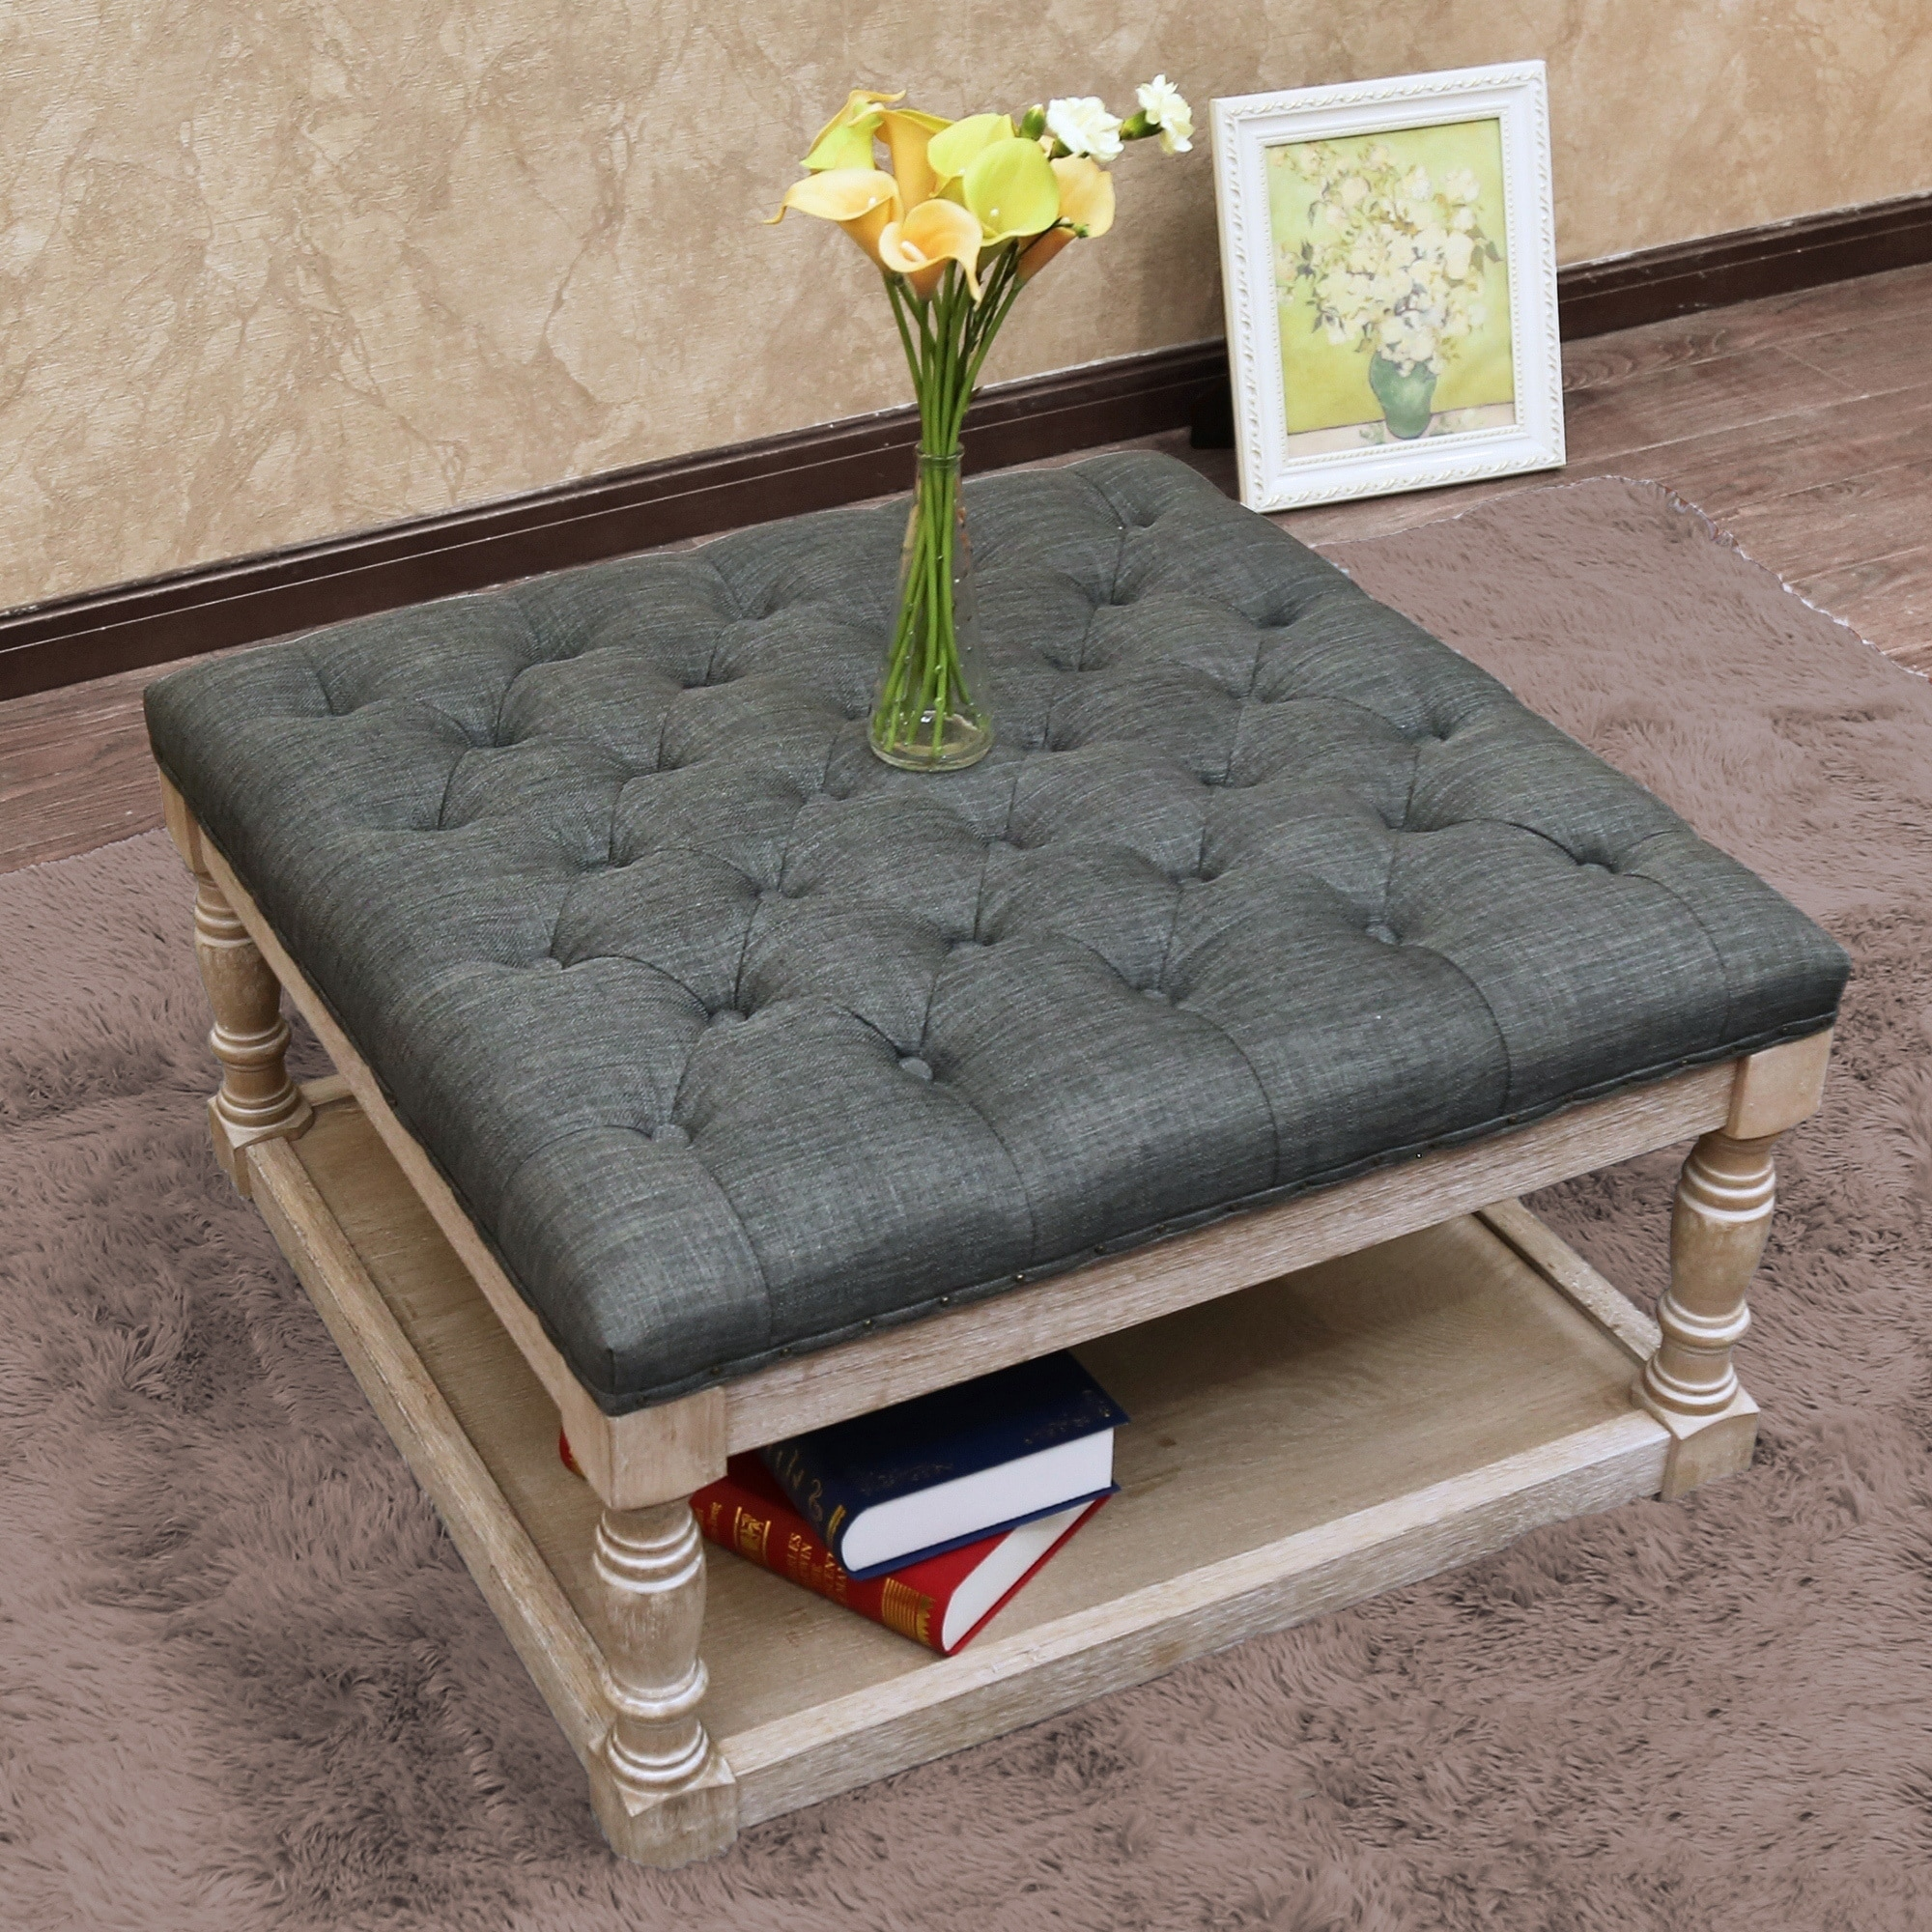 Enjoyable Cairona Fabric 30 Inch Tufted Shelved Ottoman Optional Colors Machost Co Dining Chair Design Ideas Machostcouk